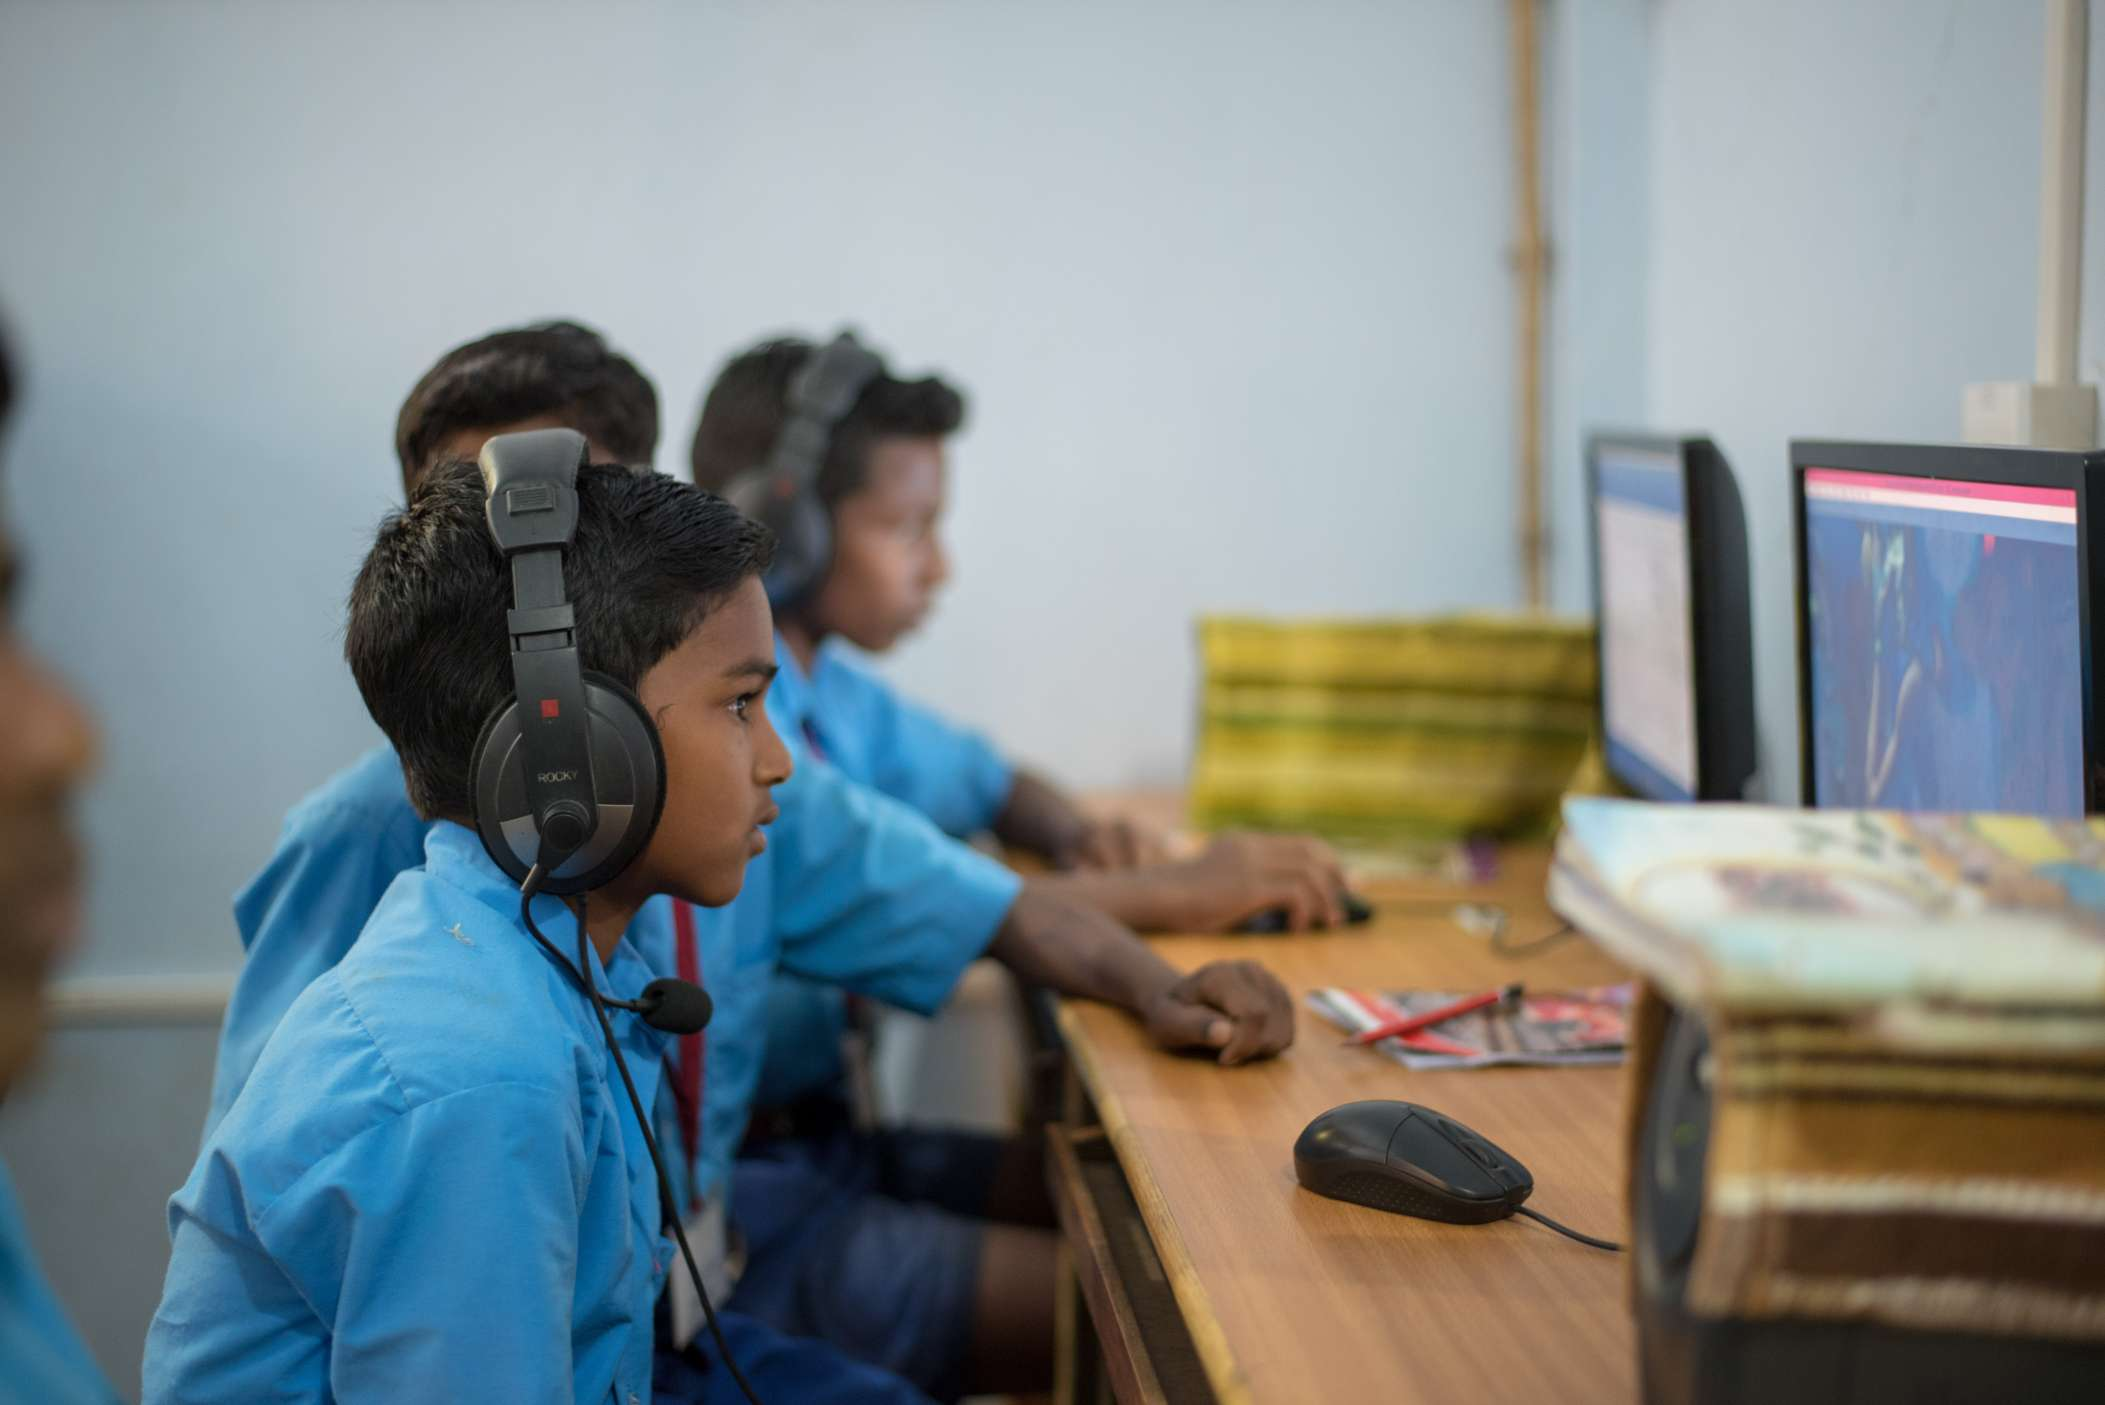 a student with headphones_edtech_ajaya